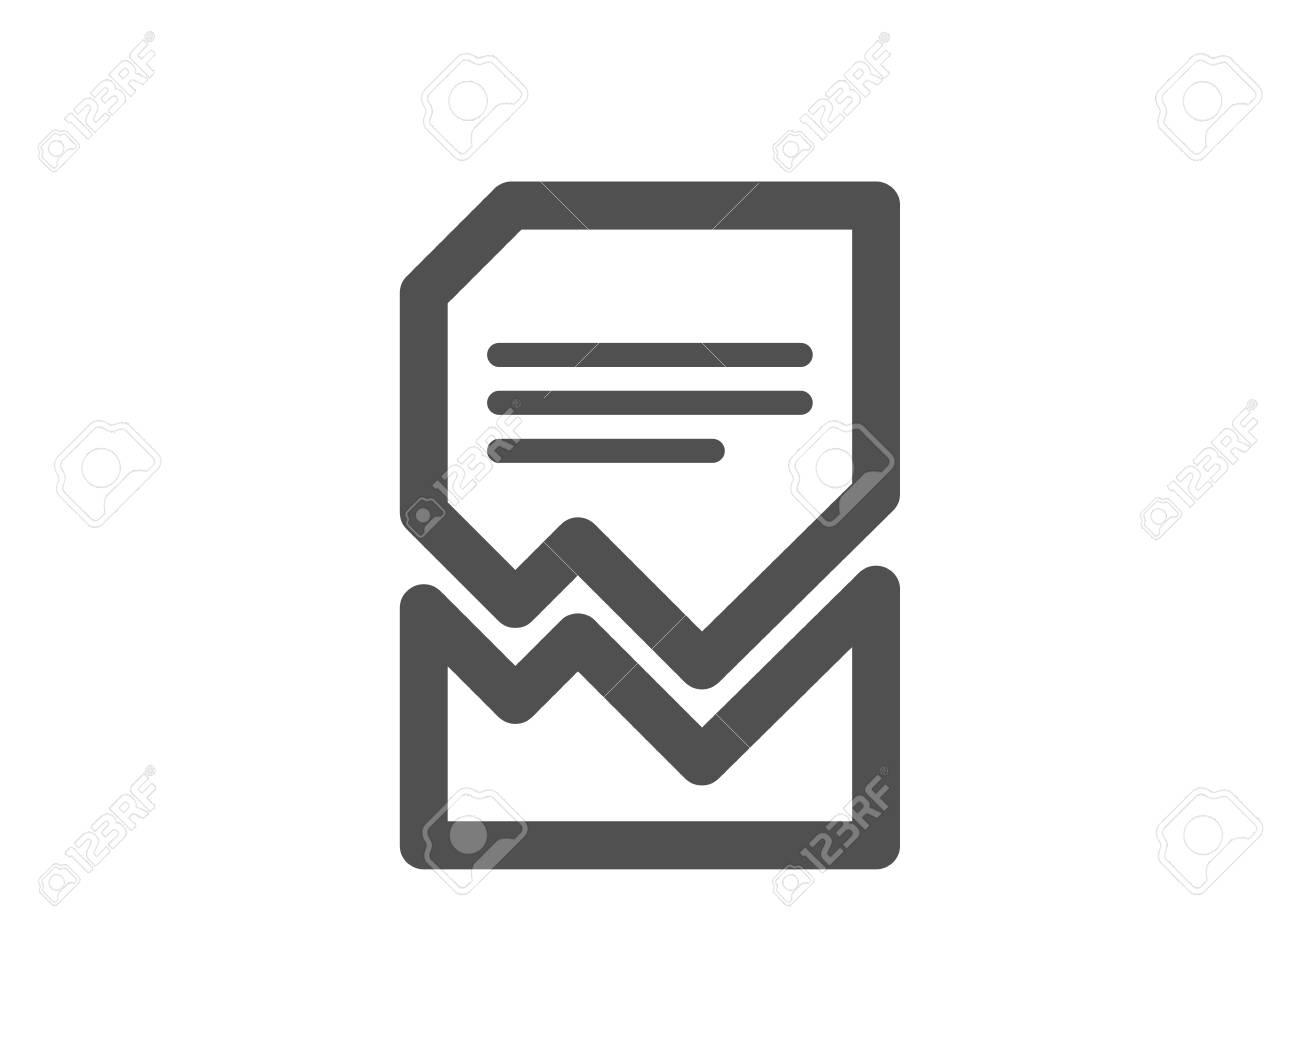 Corrupted Document icon. Bad File sign. Paper page concept symbol. Quality design element. Classic style icon. Vector - 125986048